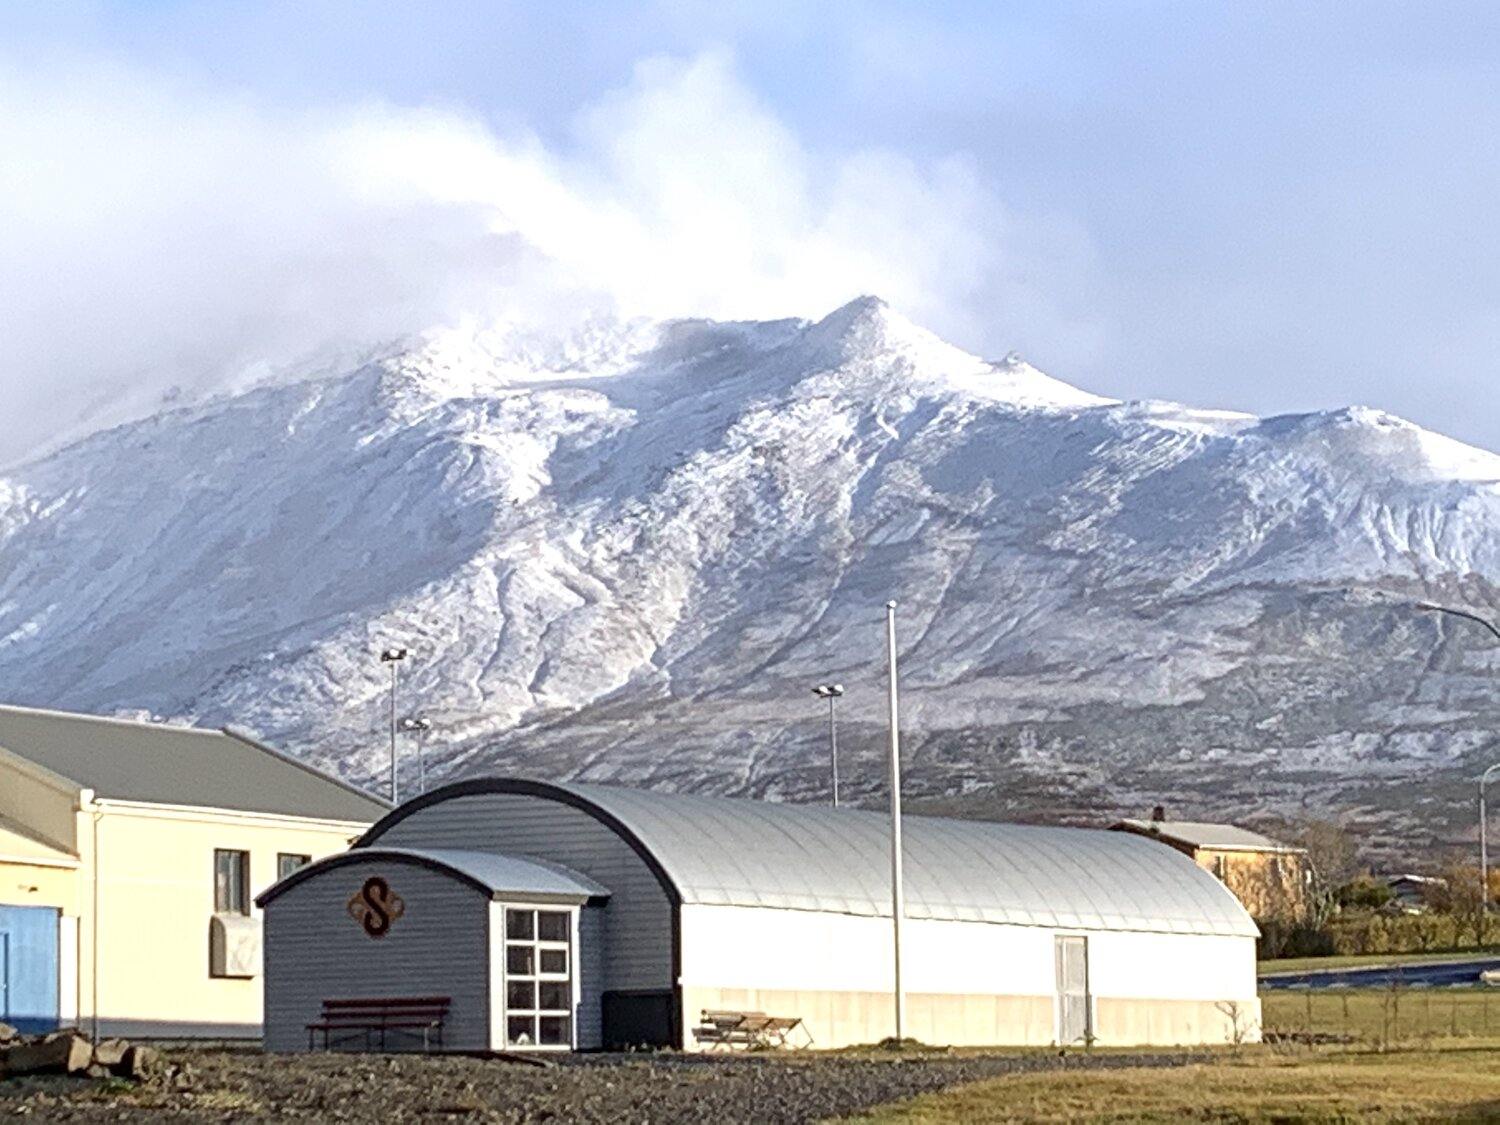 The Spákonufell museum under a snowy Mount Spákonufell, the Prophetess Mountain.